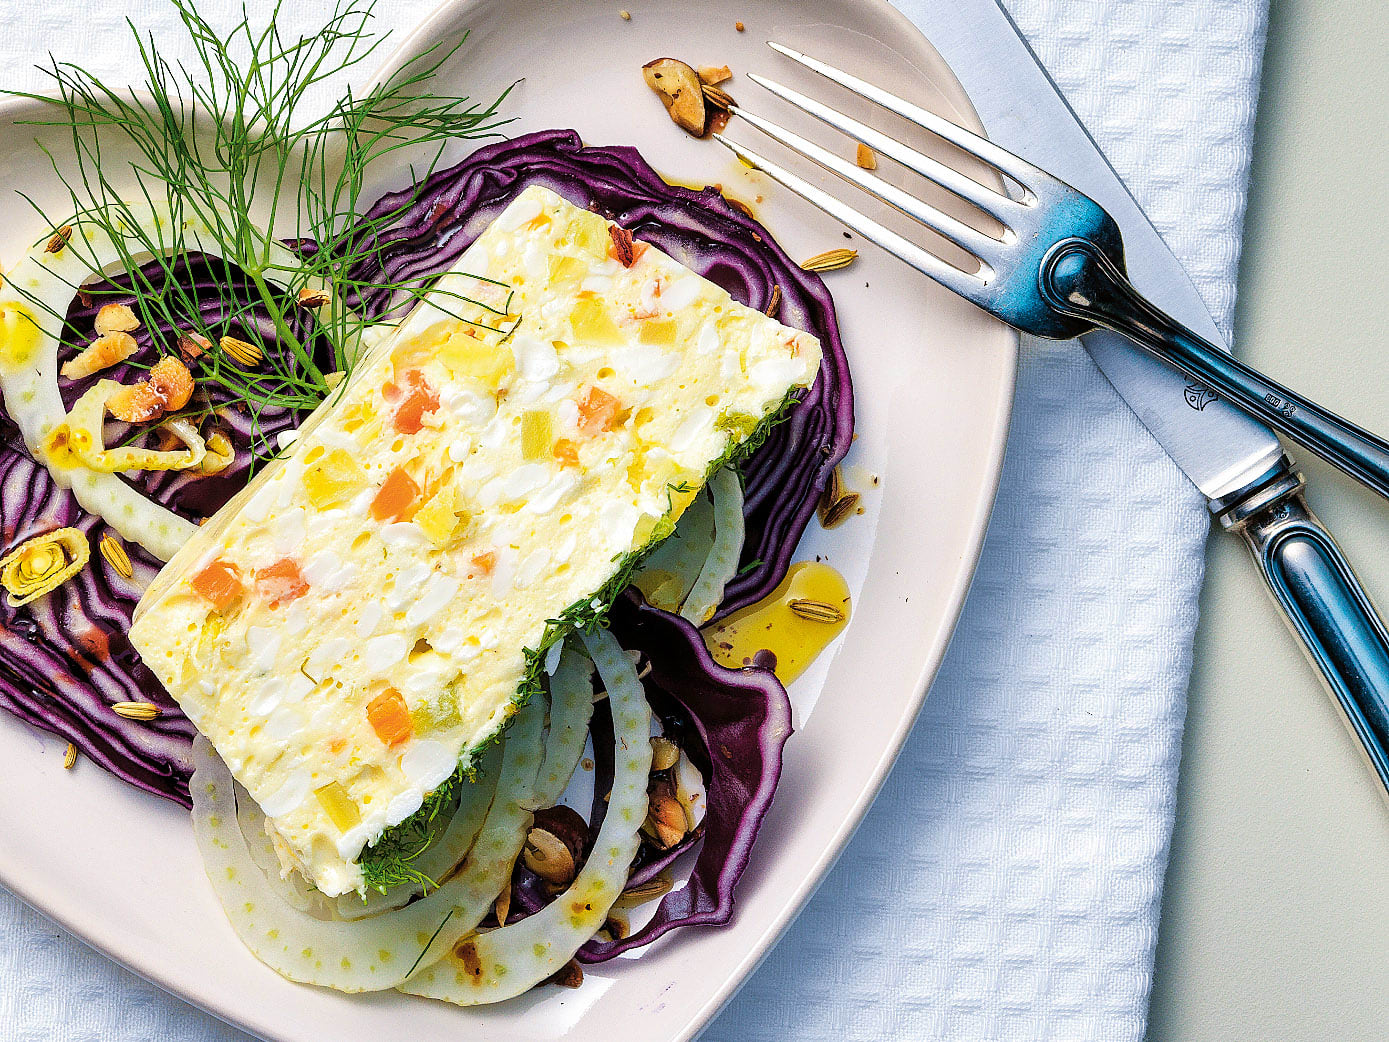 Terrine de cottage cheese au fenouil